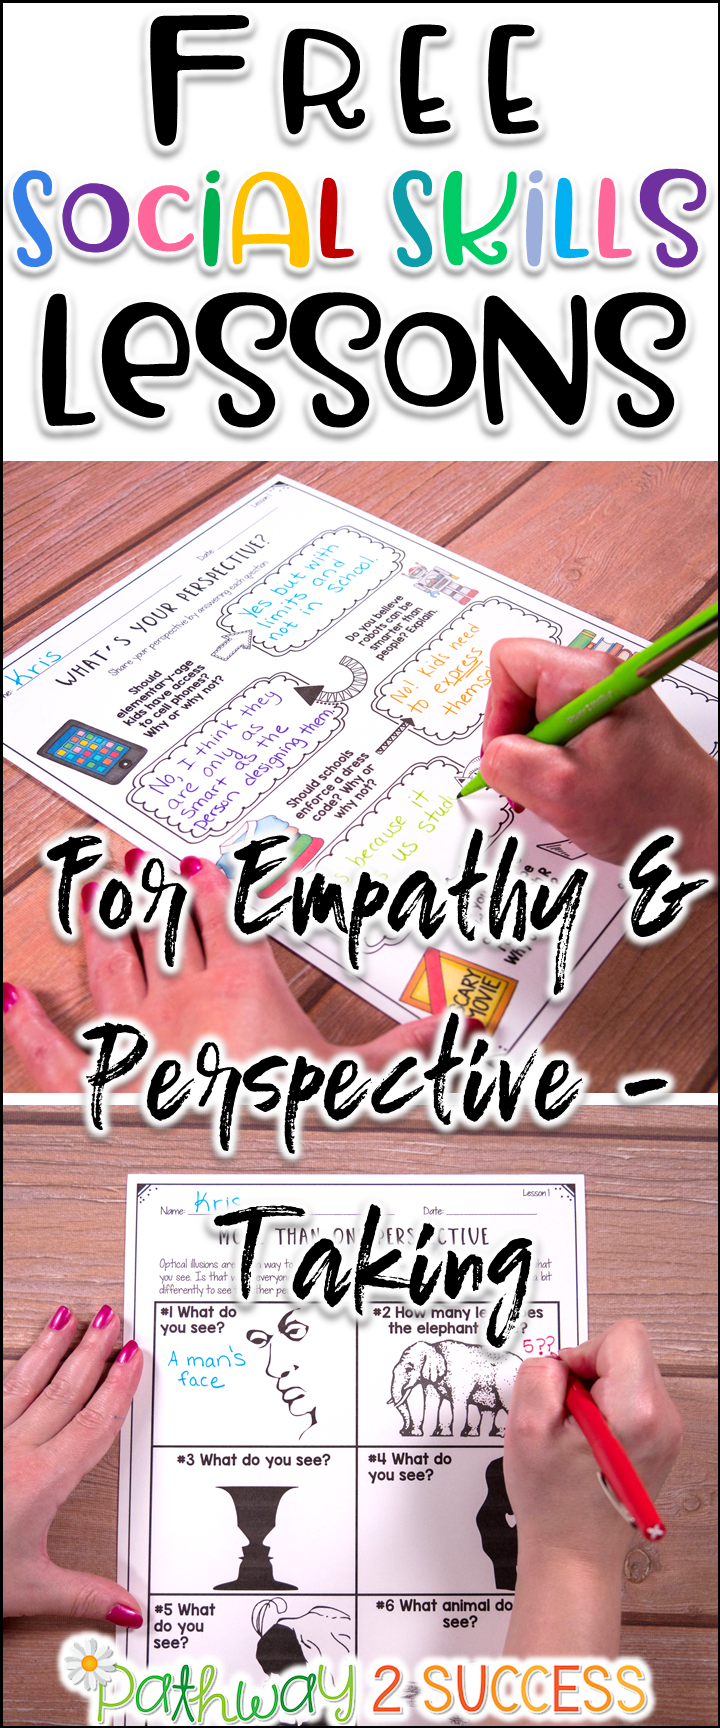 Free social skills lessons to teach empathy and perspective-taking ...